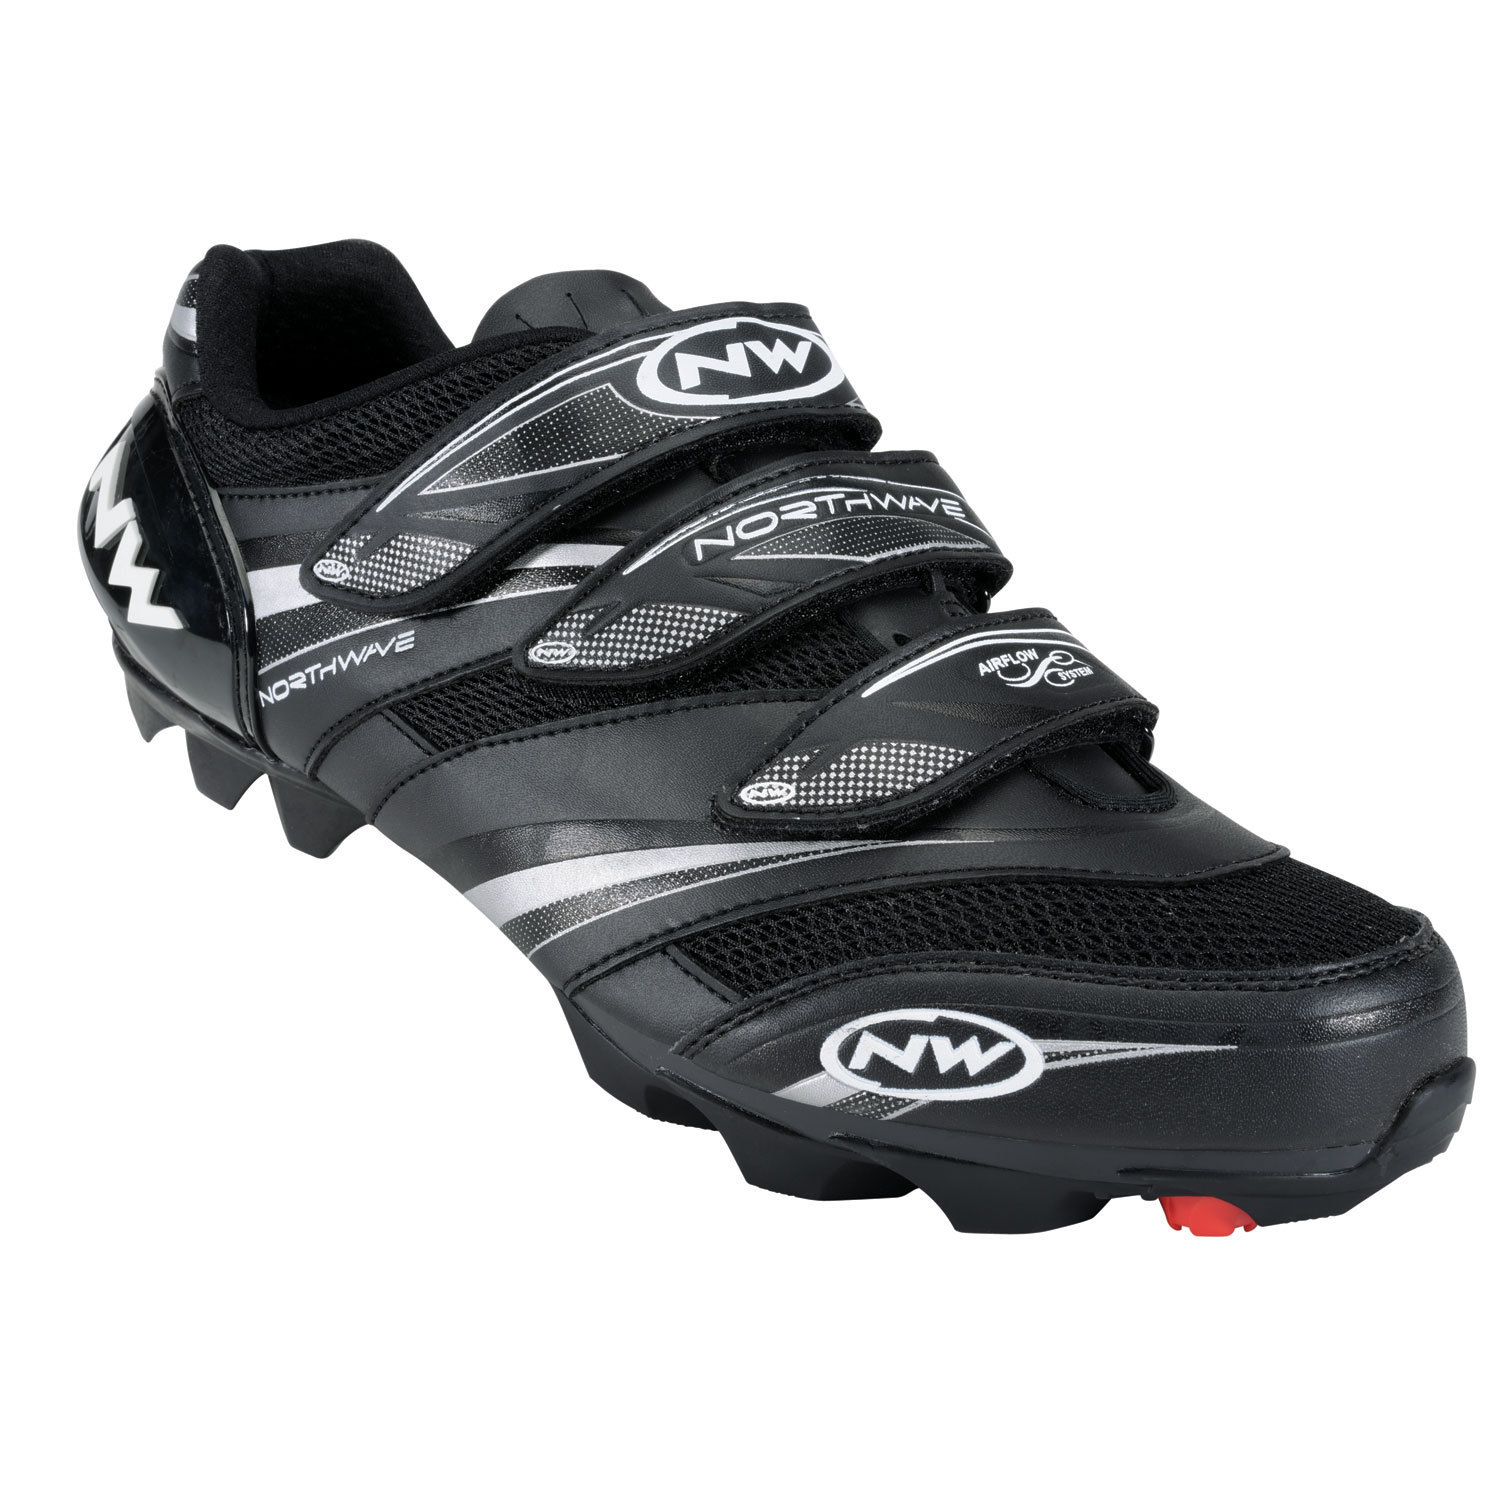 Cycling Shoe Covers Australia